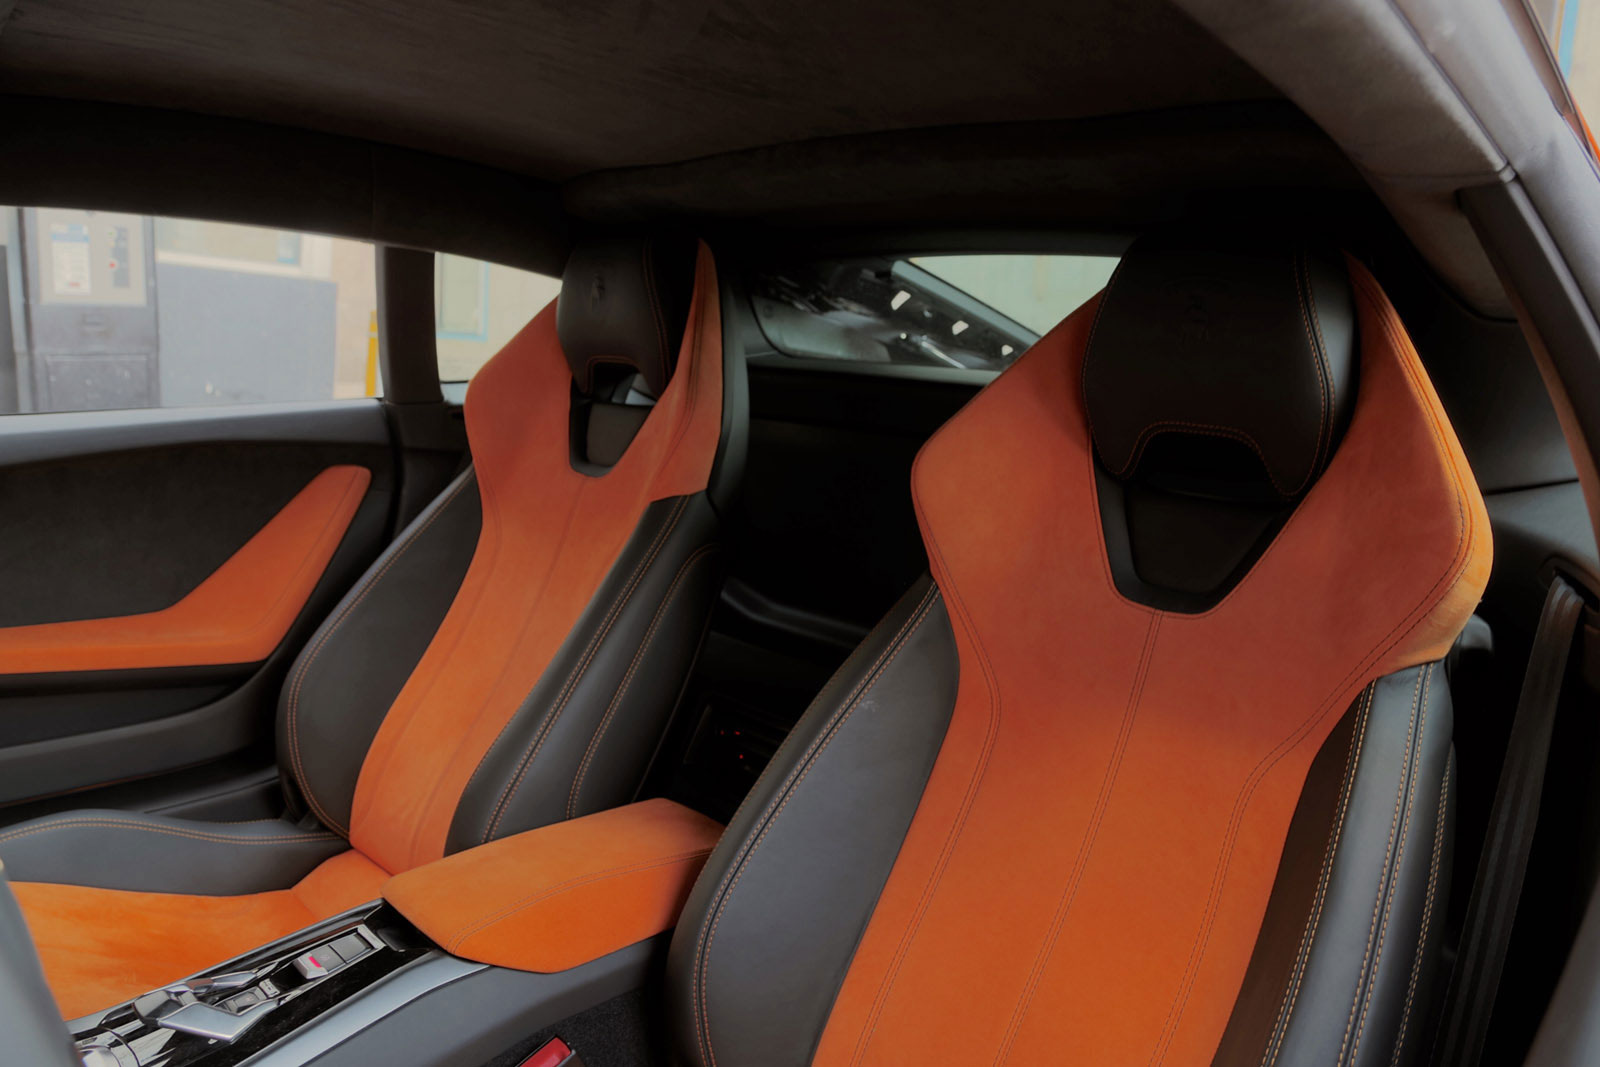 How many seats does a lamborghini have